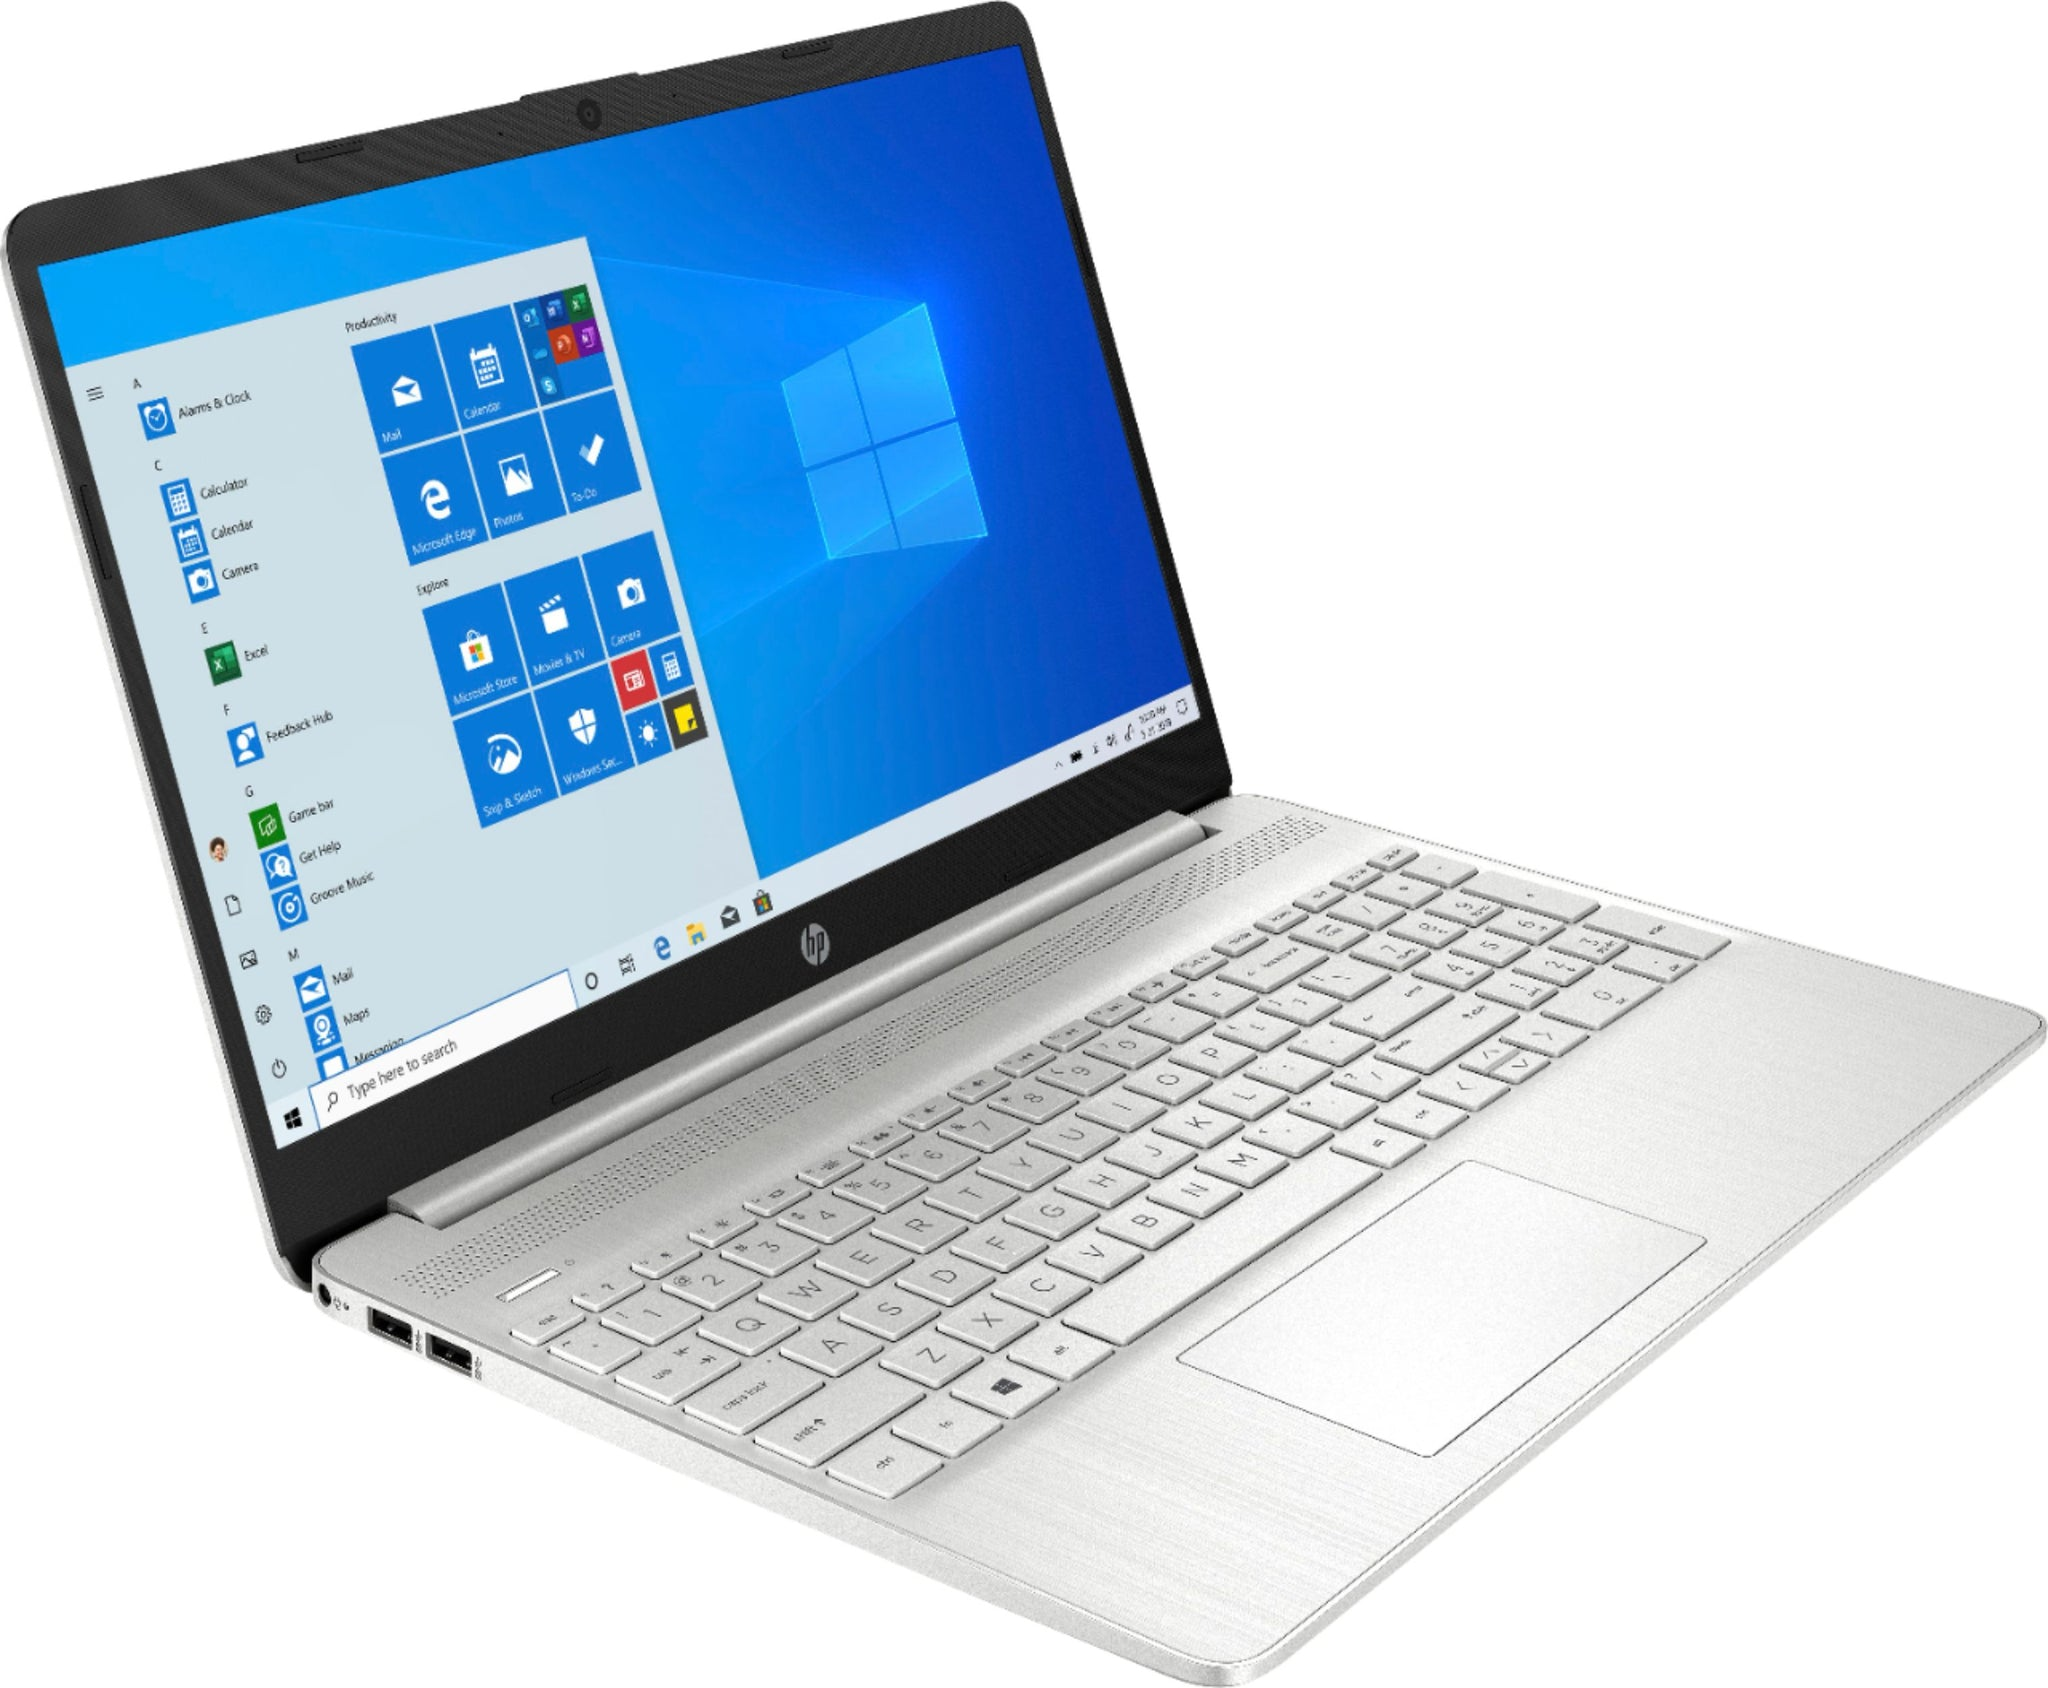 "B.NEW | HP 15-DY1043 | i5-1035G1 1GHz 256GB-12GB, 15.6"" TOUCHSCREEN, WIN10, NATURAL SILVER."